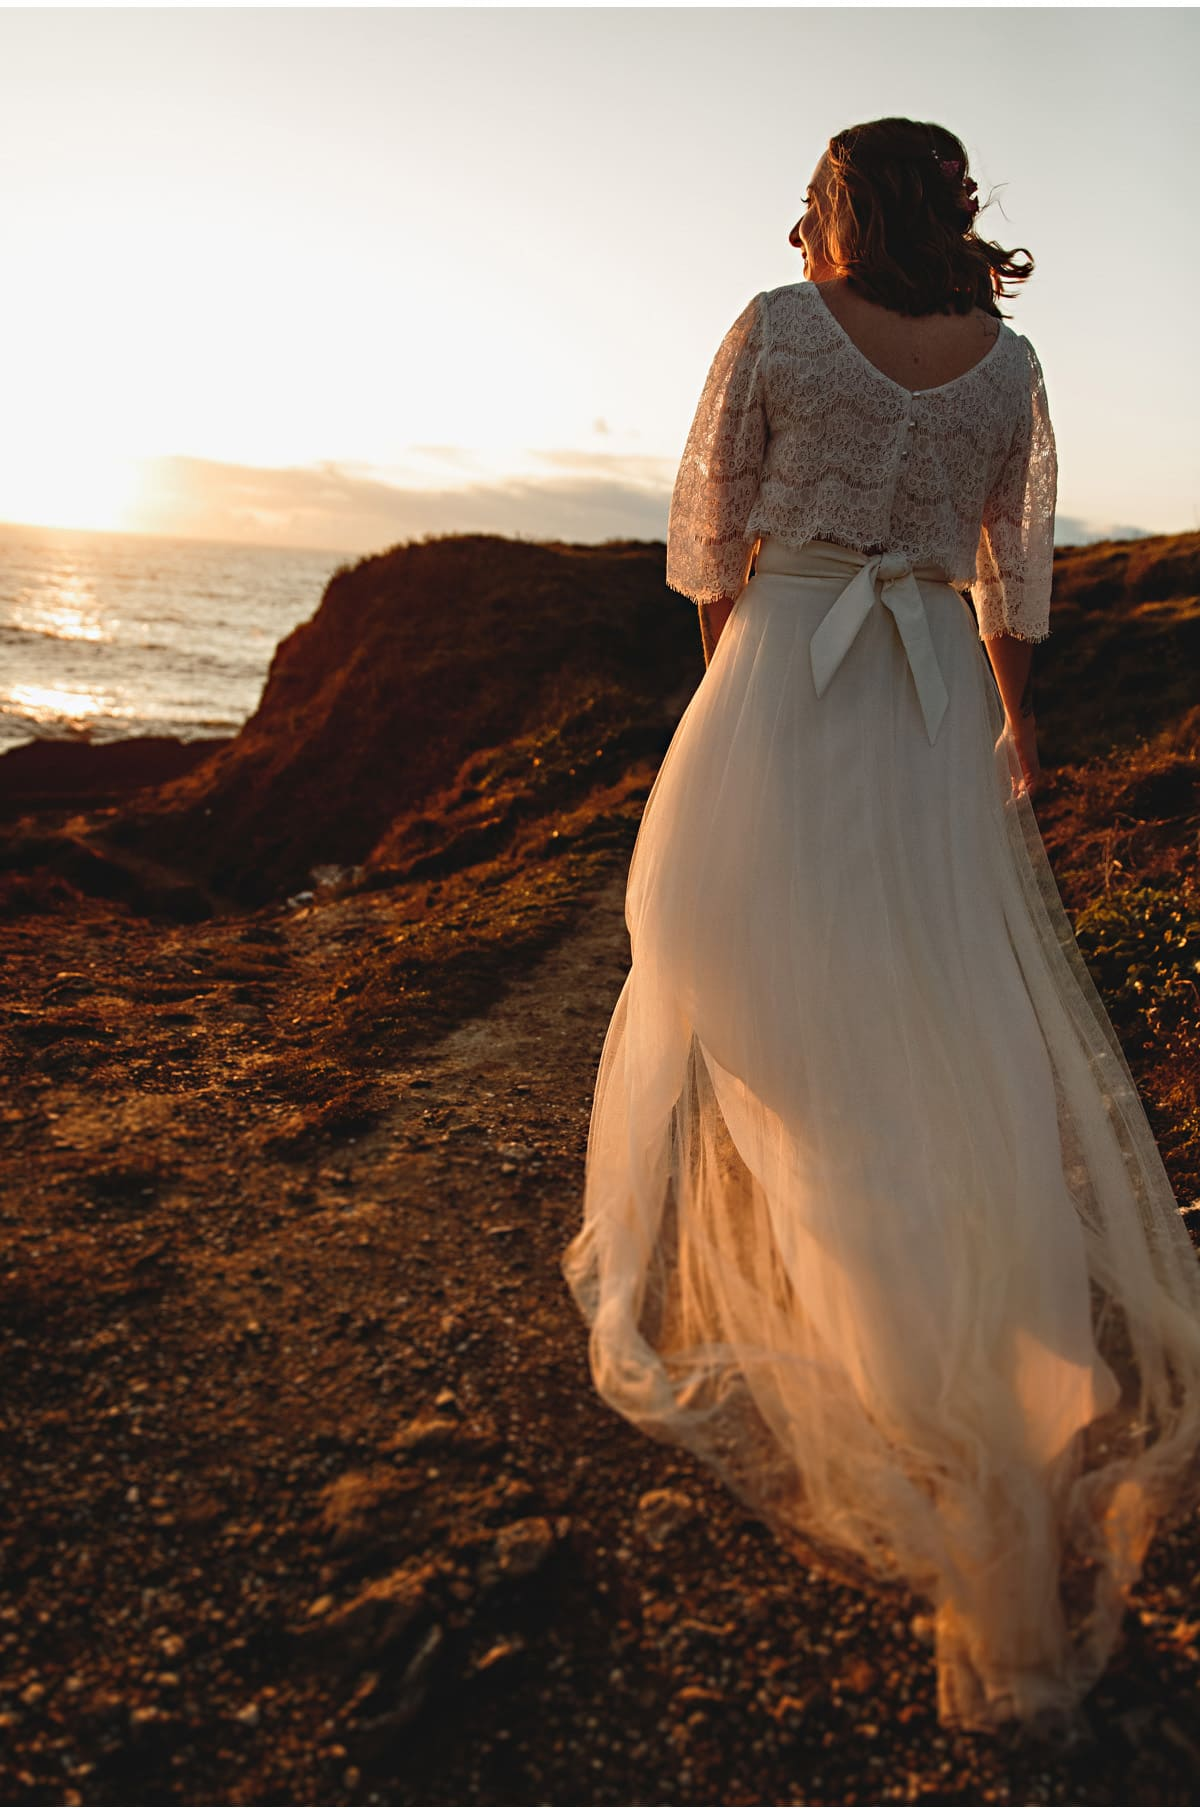 the bride at sunet